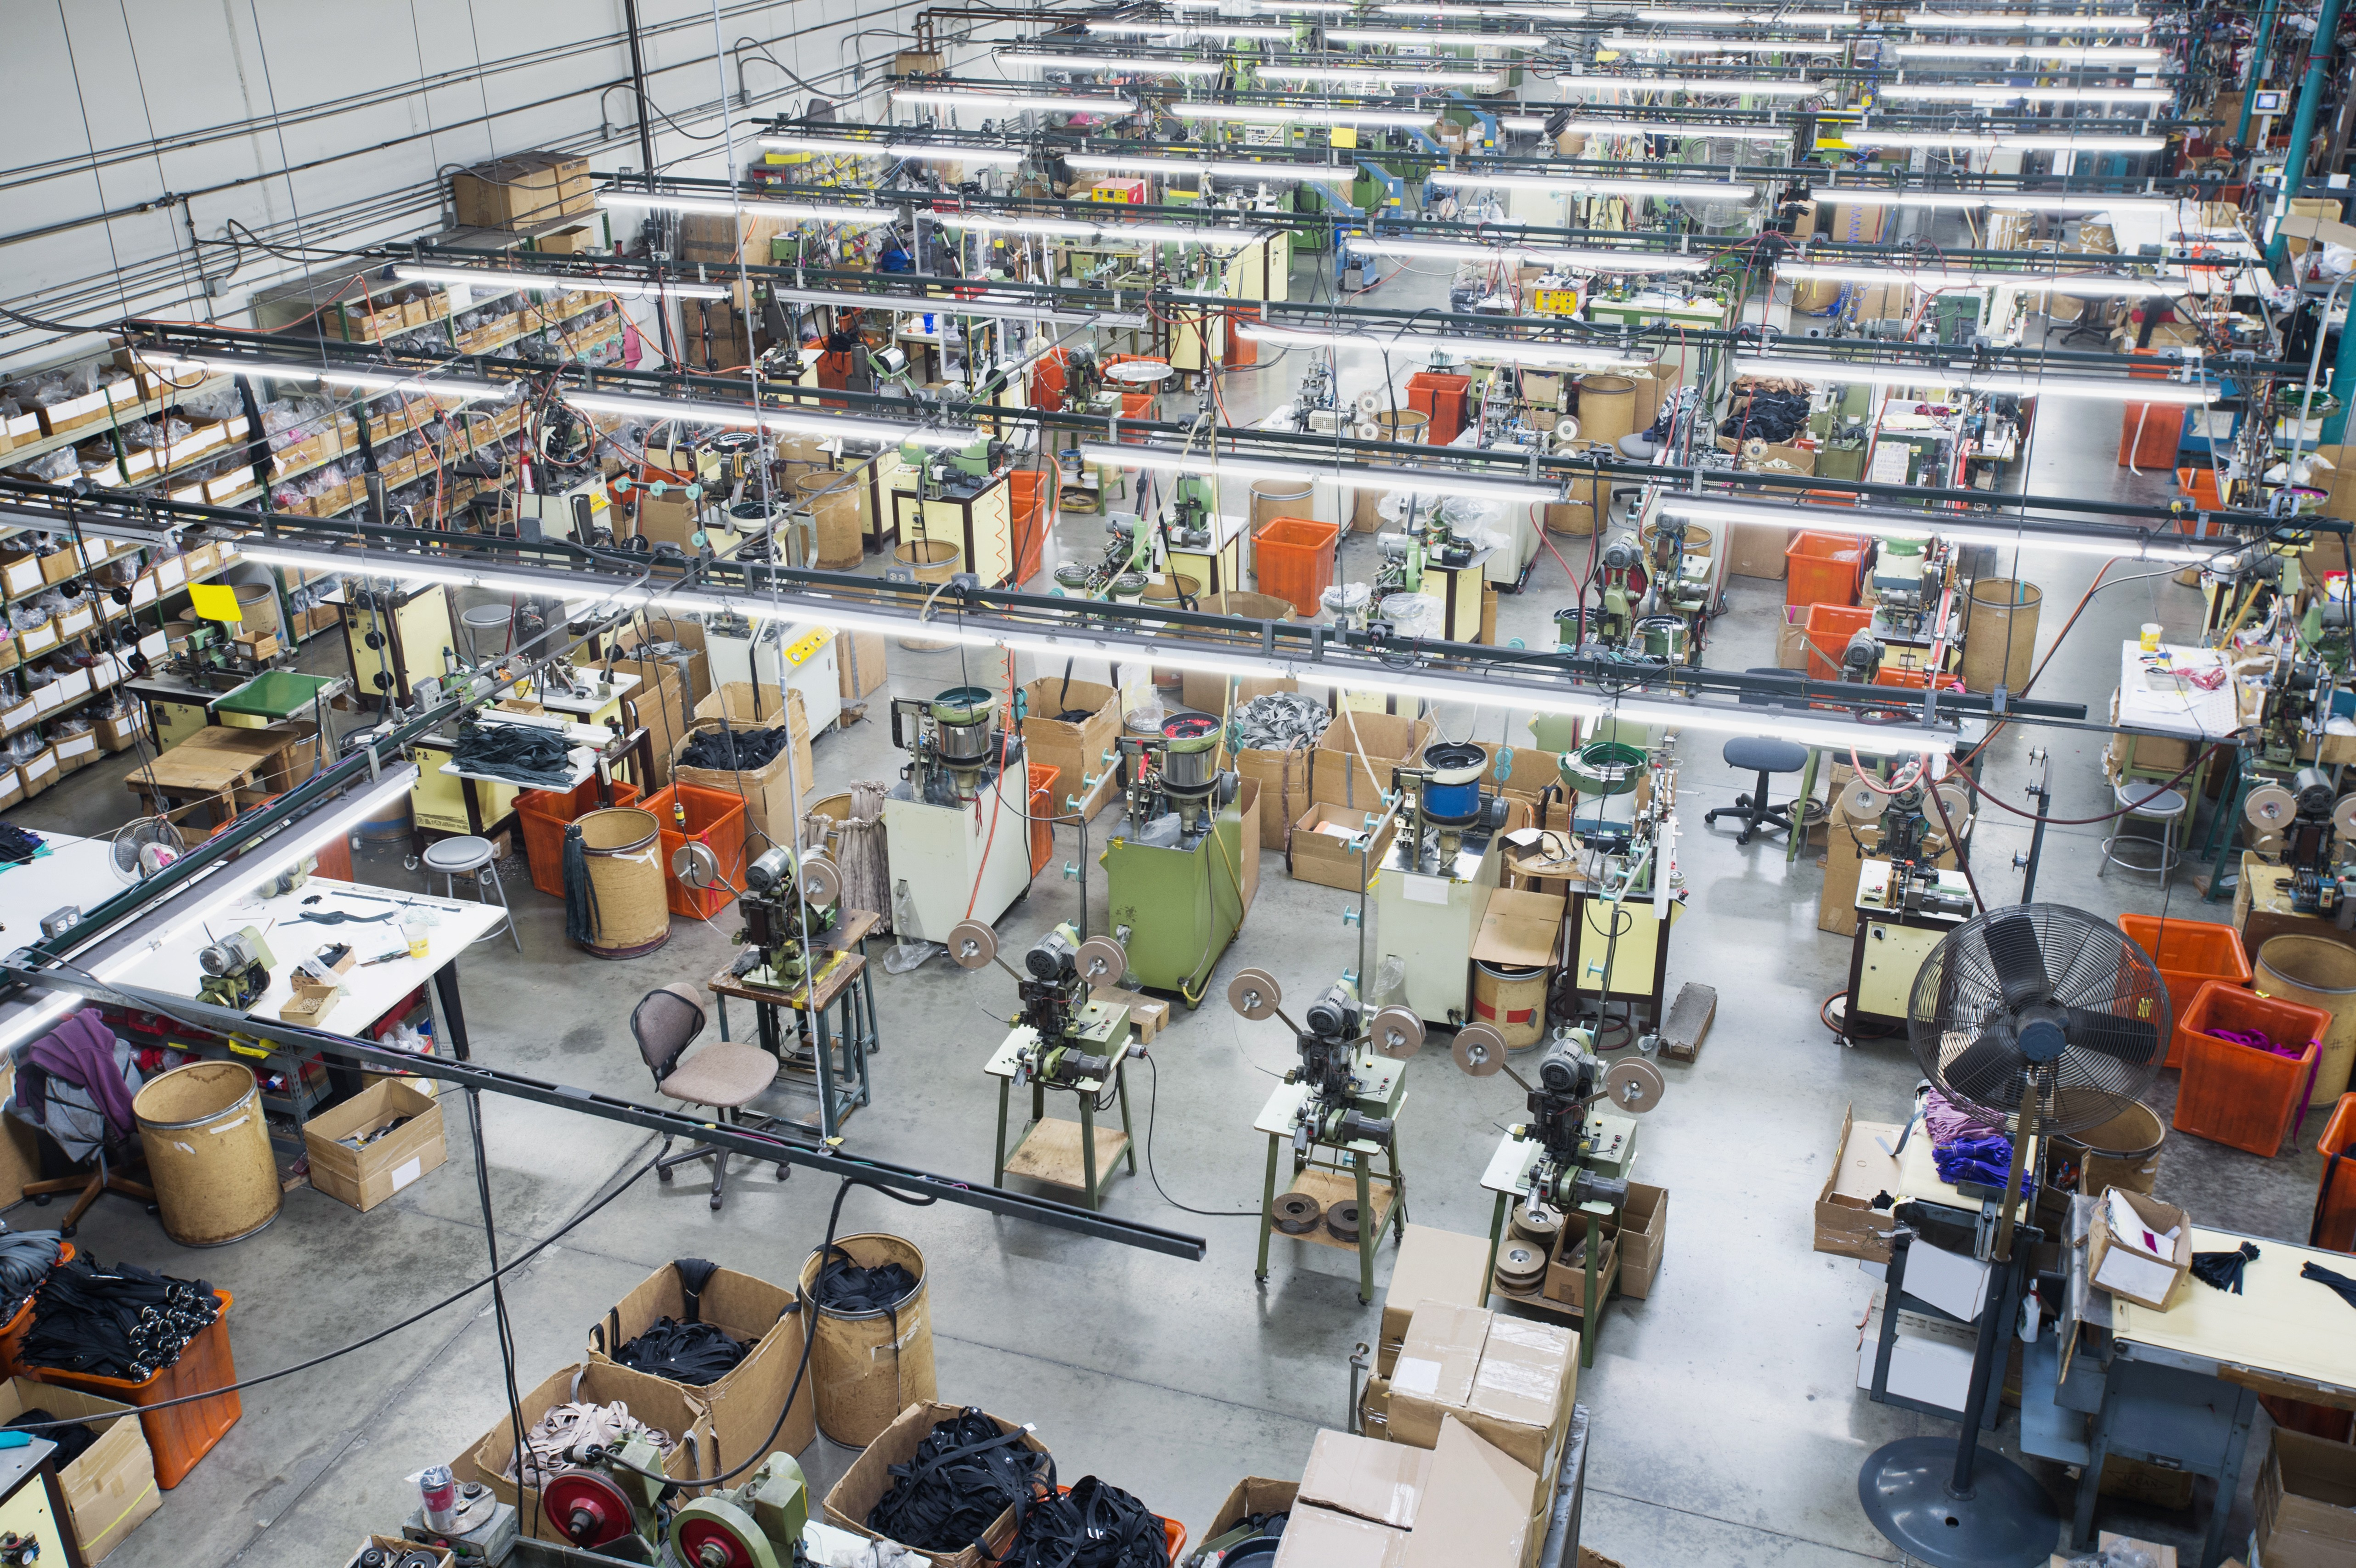 22 Feb 2013, Los Angeles, California, USA --- Overhead view of textile factory --- Image by © Erik Isakson/Blend Images/Corbis